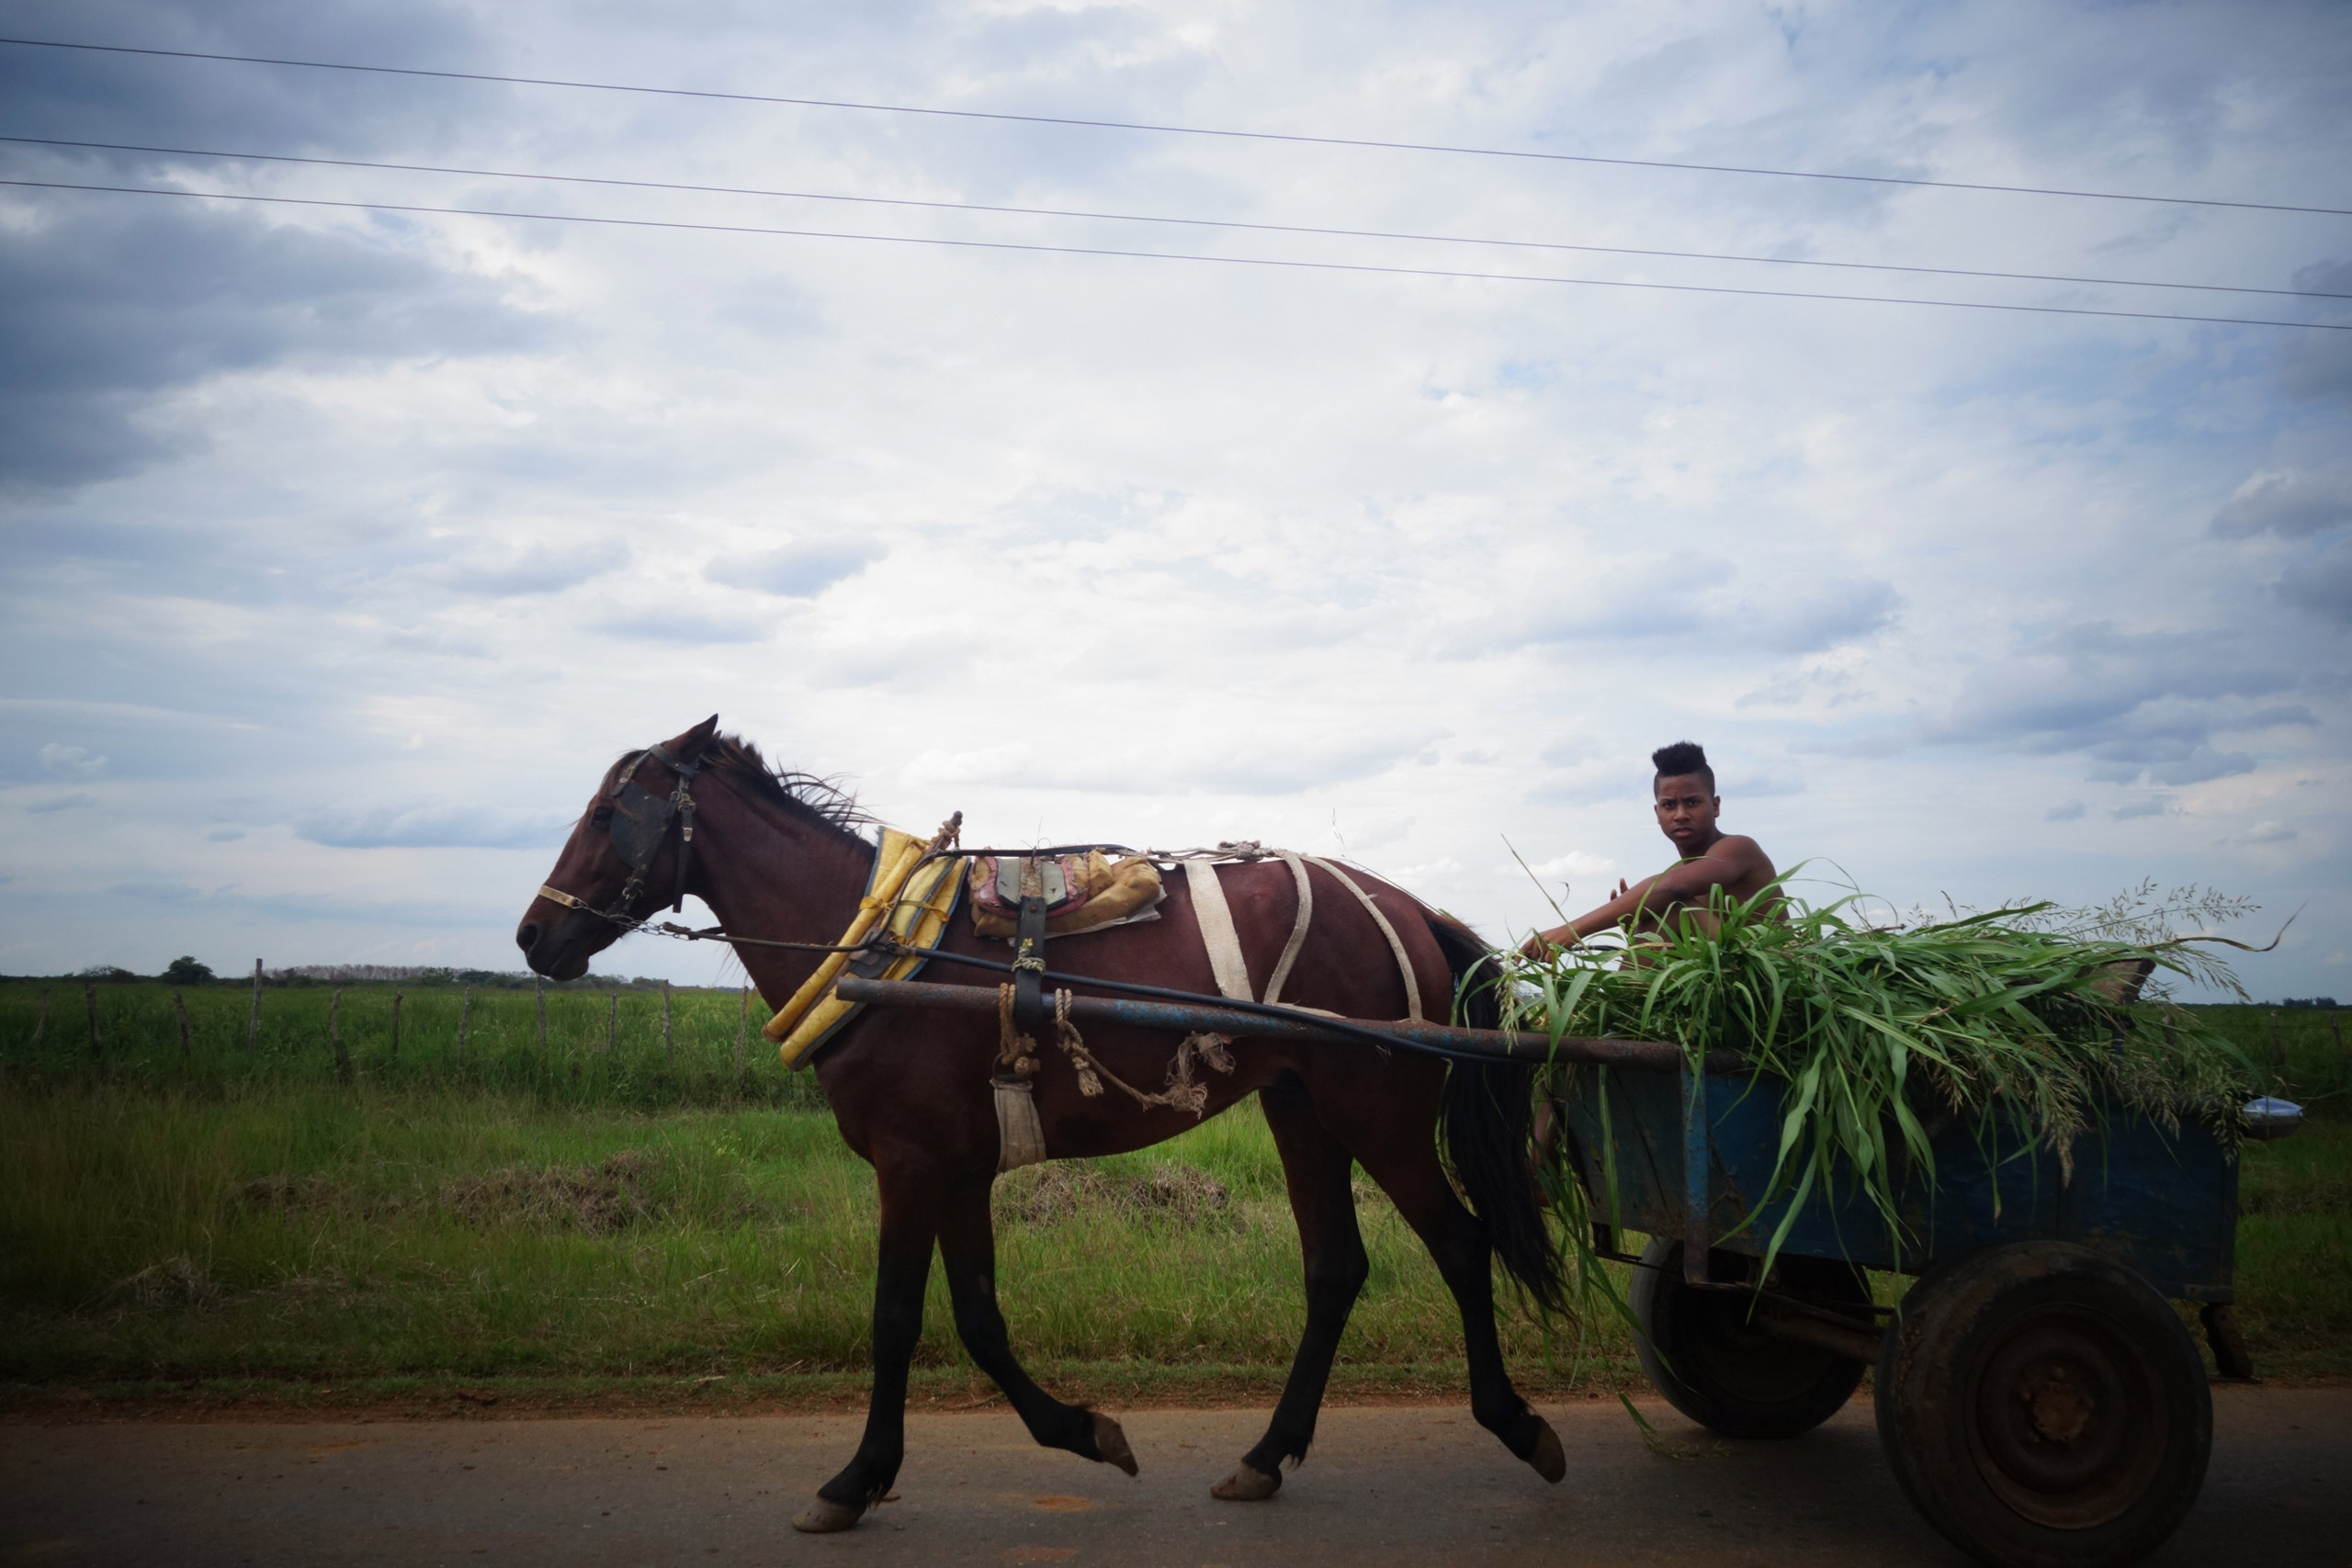 A boy drives a horse-drawn cart full of sugar cane on a road southeast of Havana, Cuba, May 2, 2015.